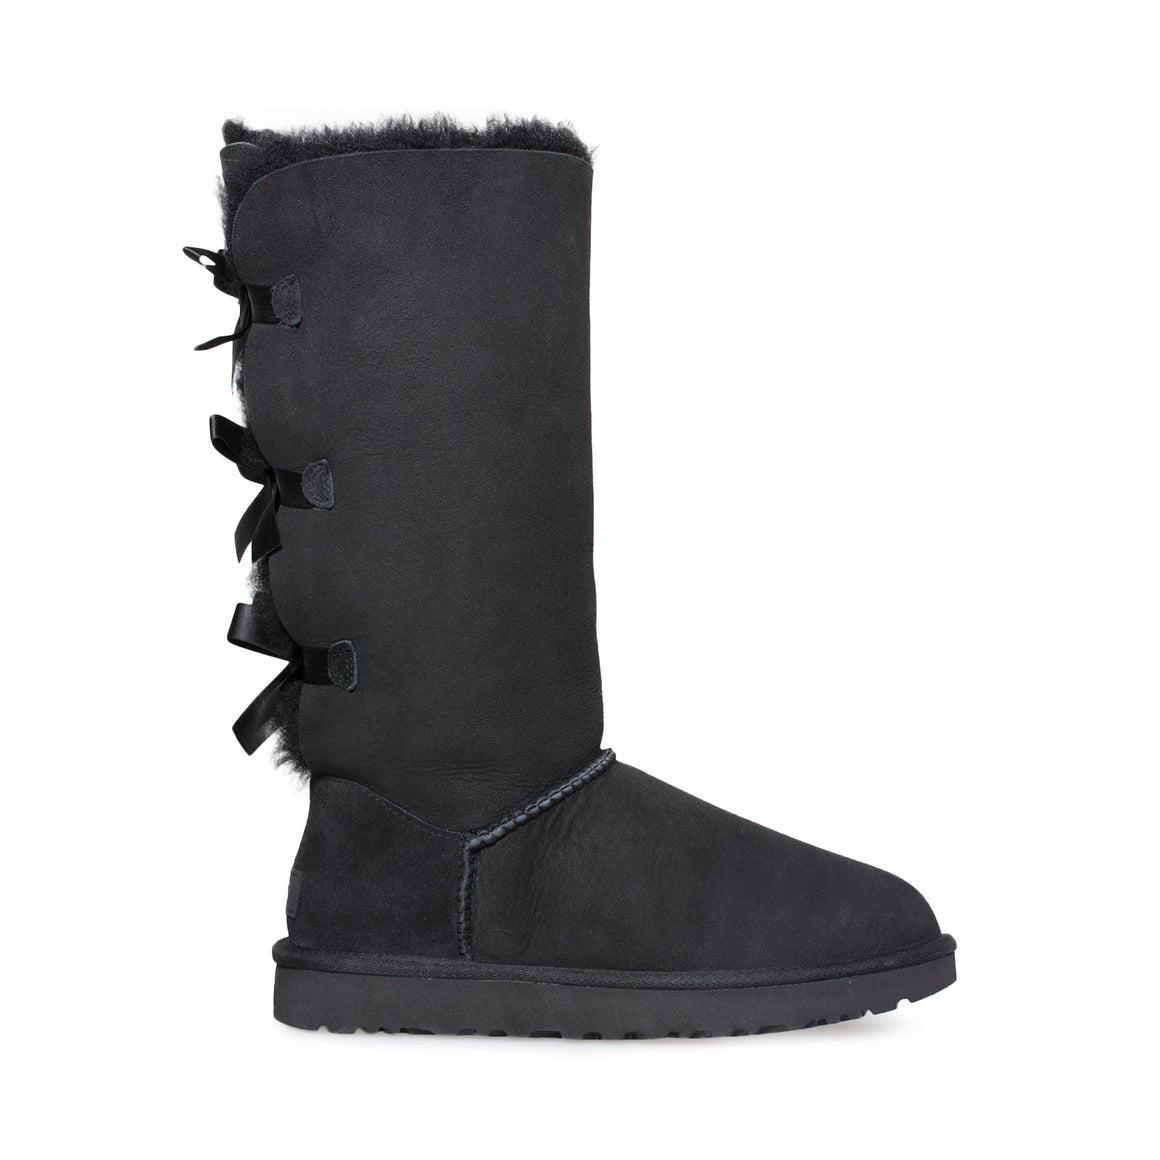 UGG Bailey Bow Tall II Black Boots - Youth